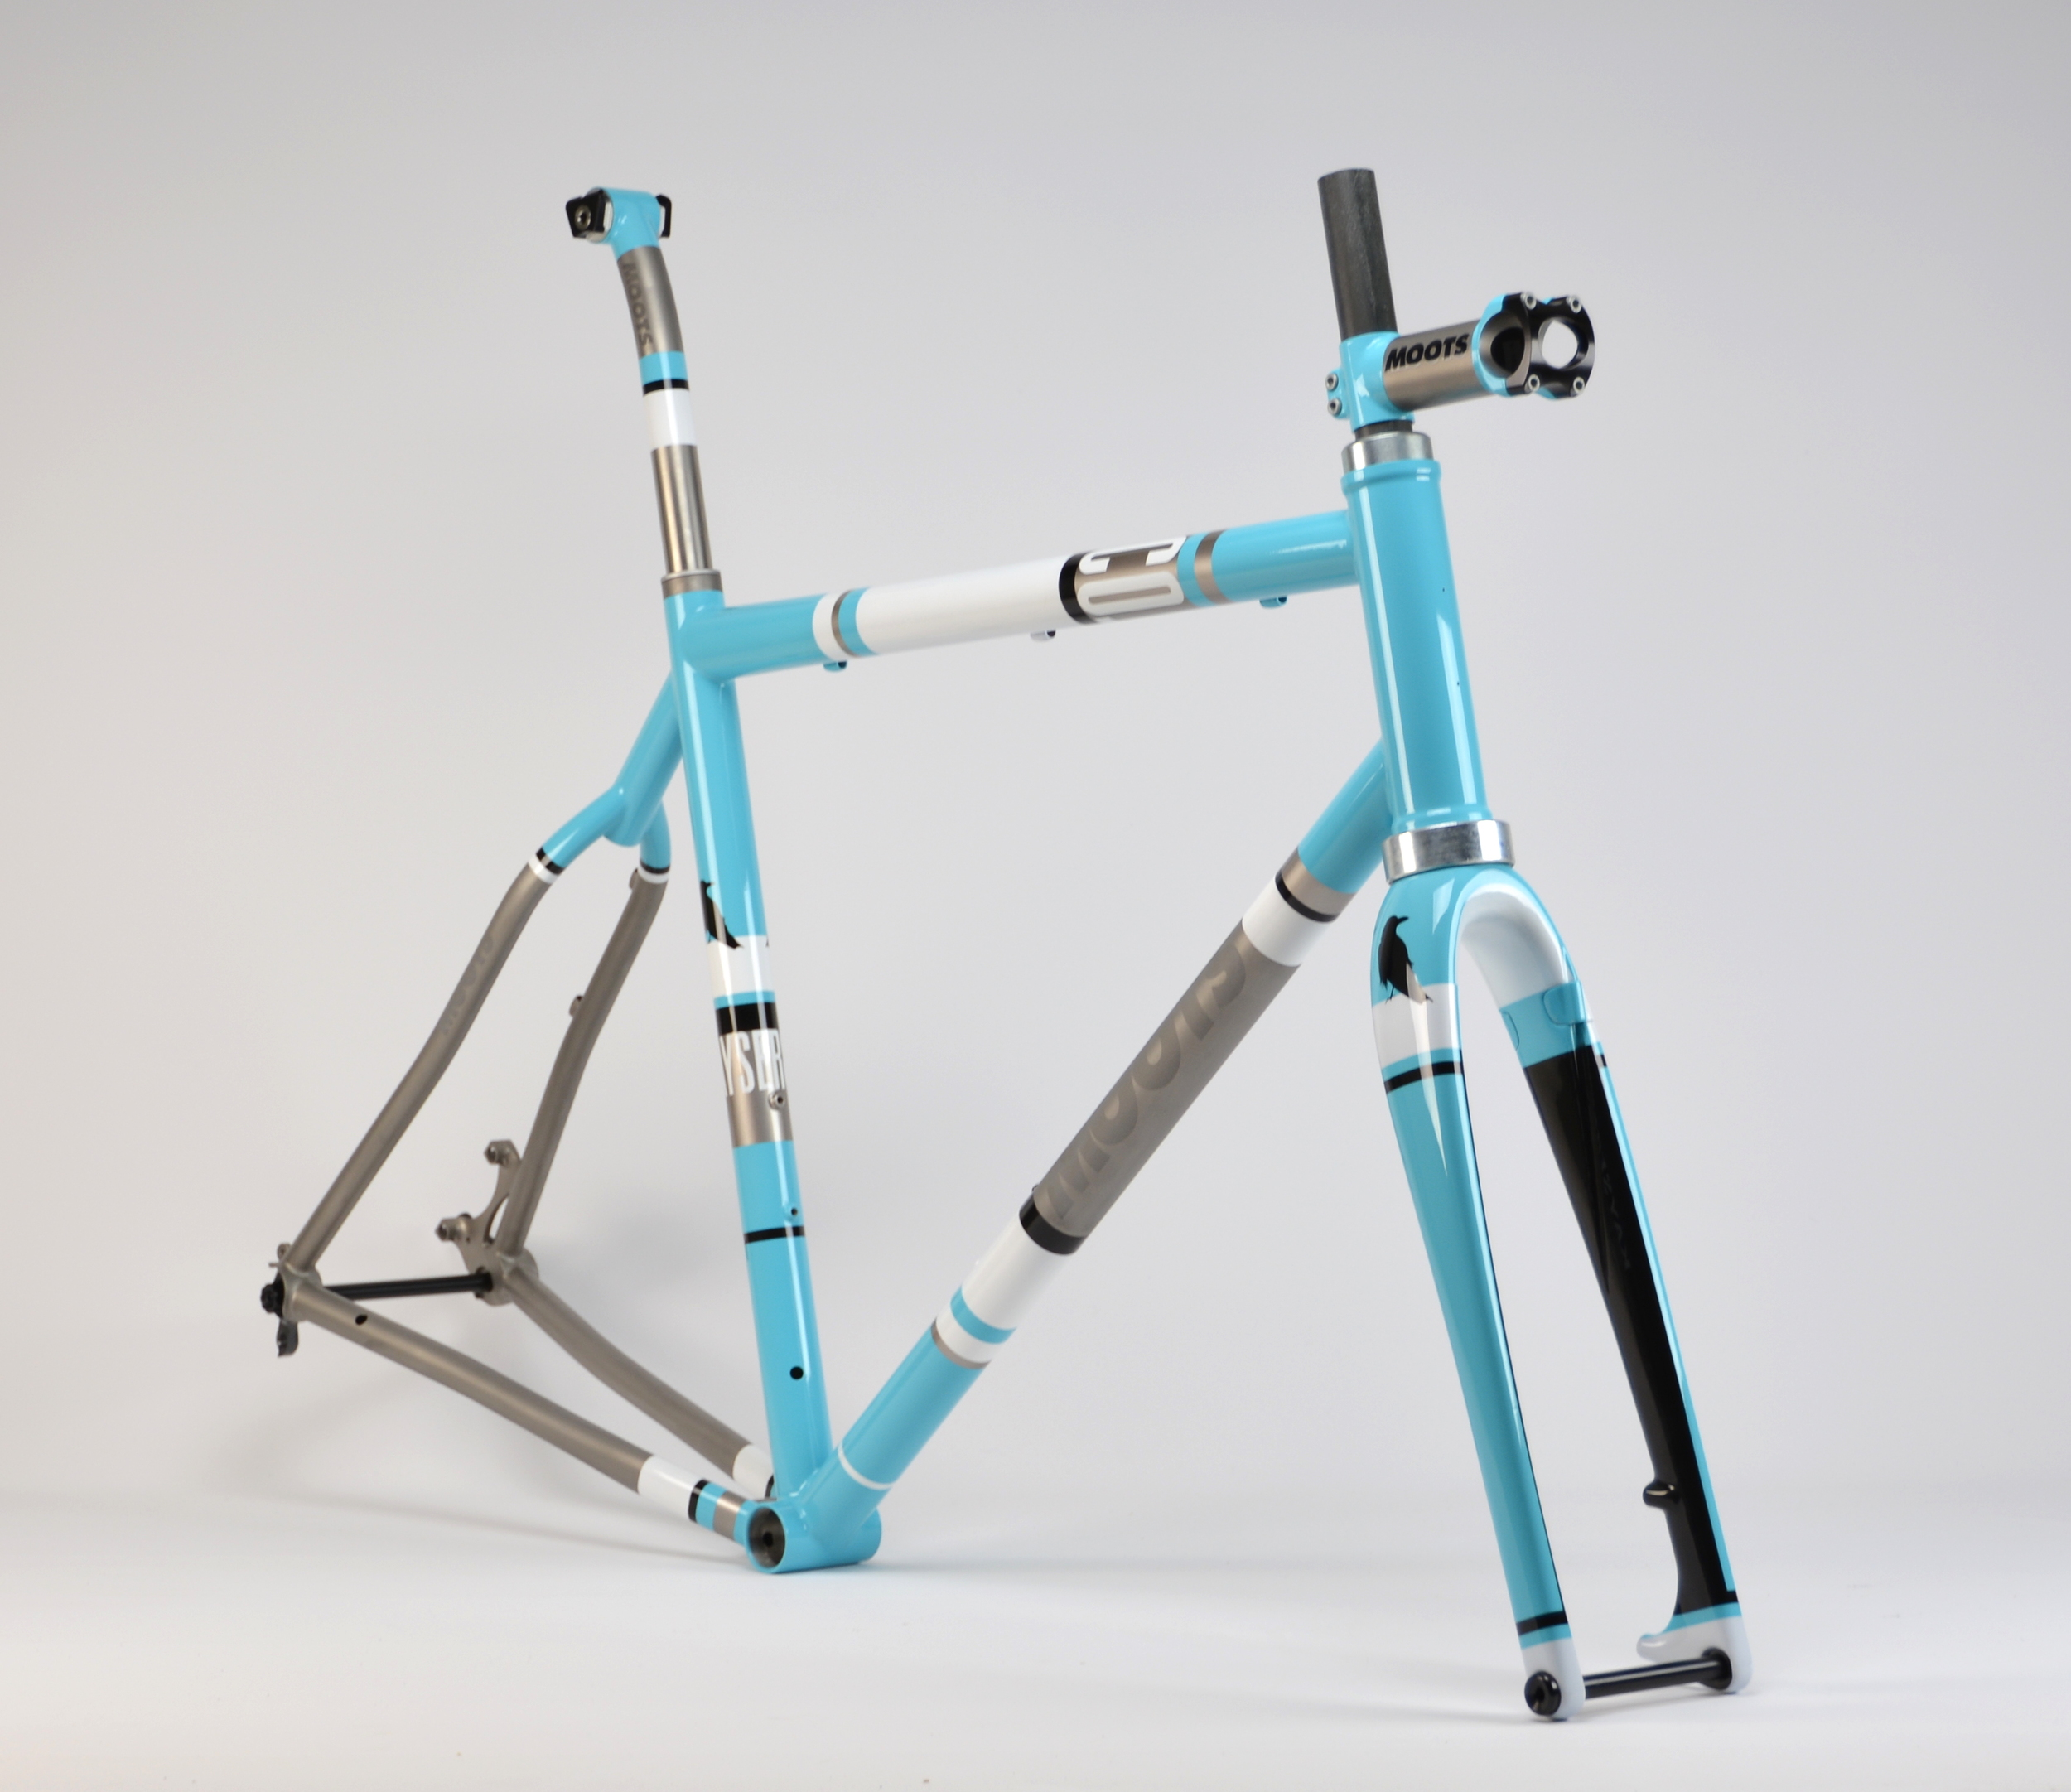 Moots-Routt w/Kayser & Co Graphics